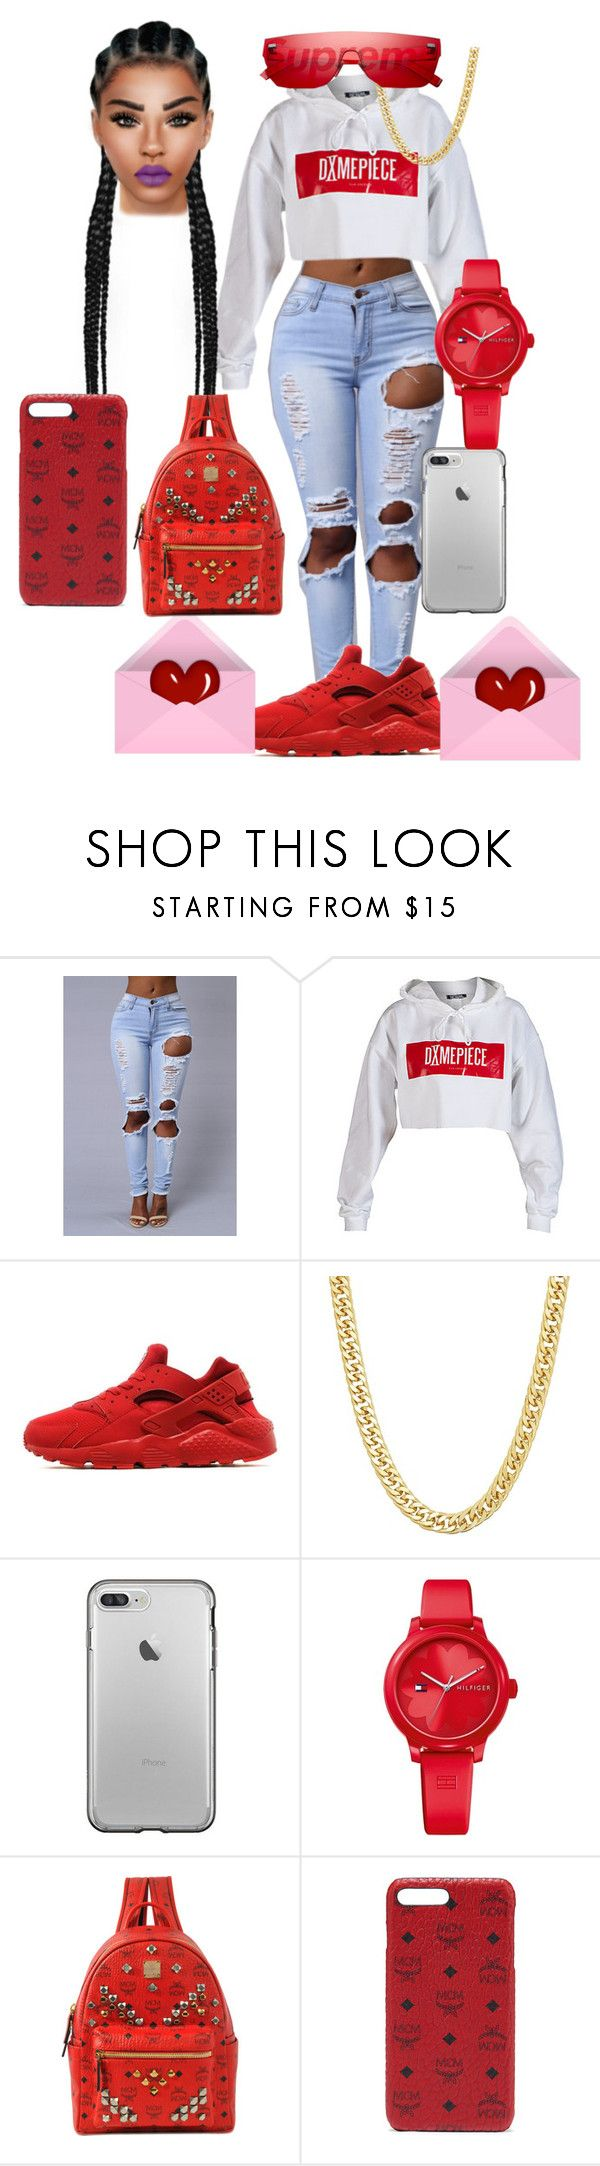 """""""Oh she bad♀️‼️"""" by marleymal ❤ liked on Polyvore featuring Dimepiece, NIKE, Louis Vuitton, Tommy Hilfiger and MCM"""